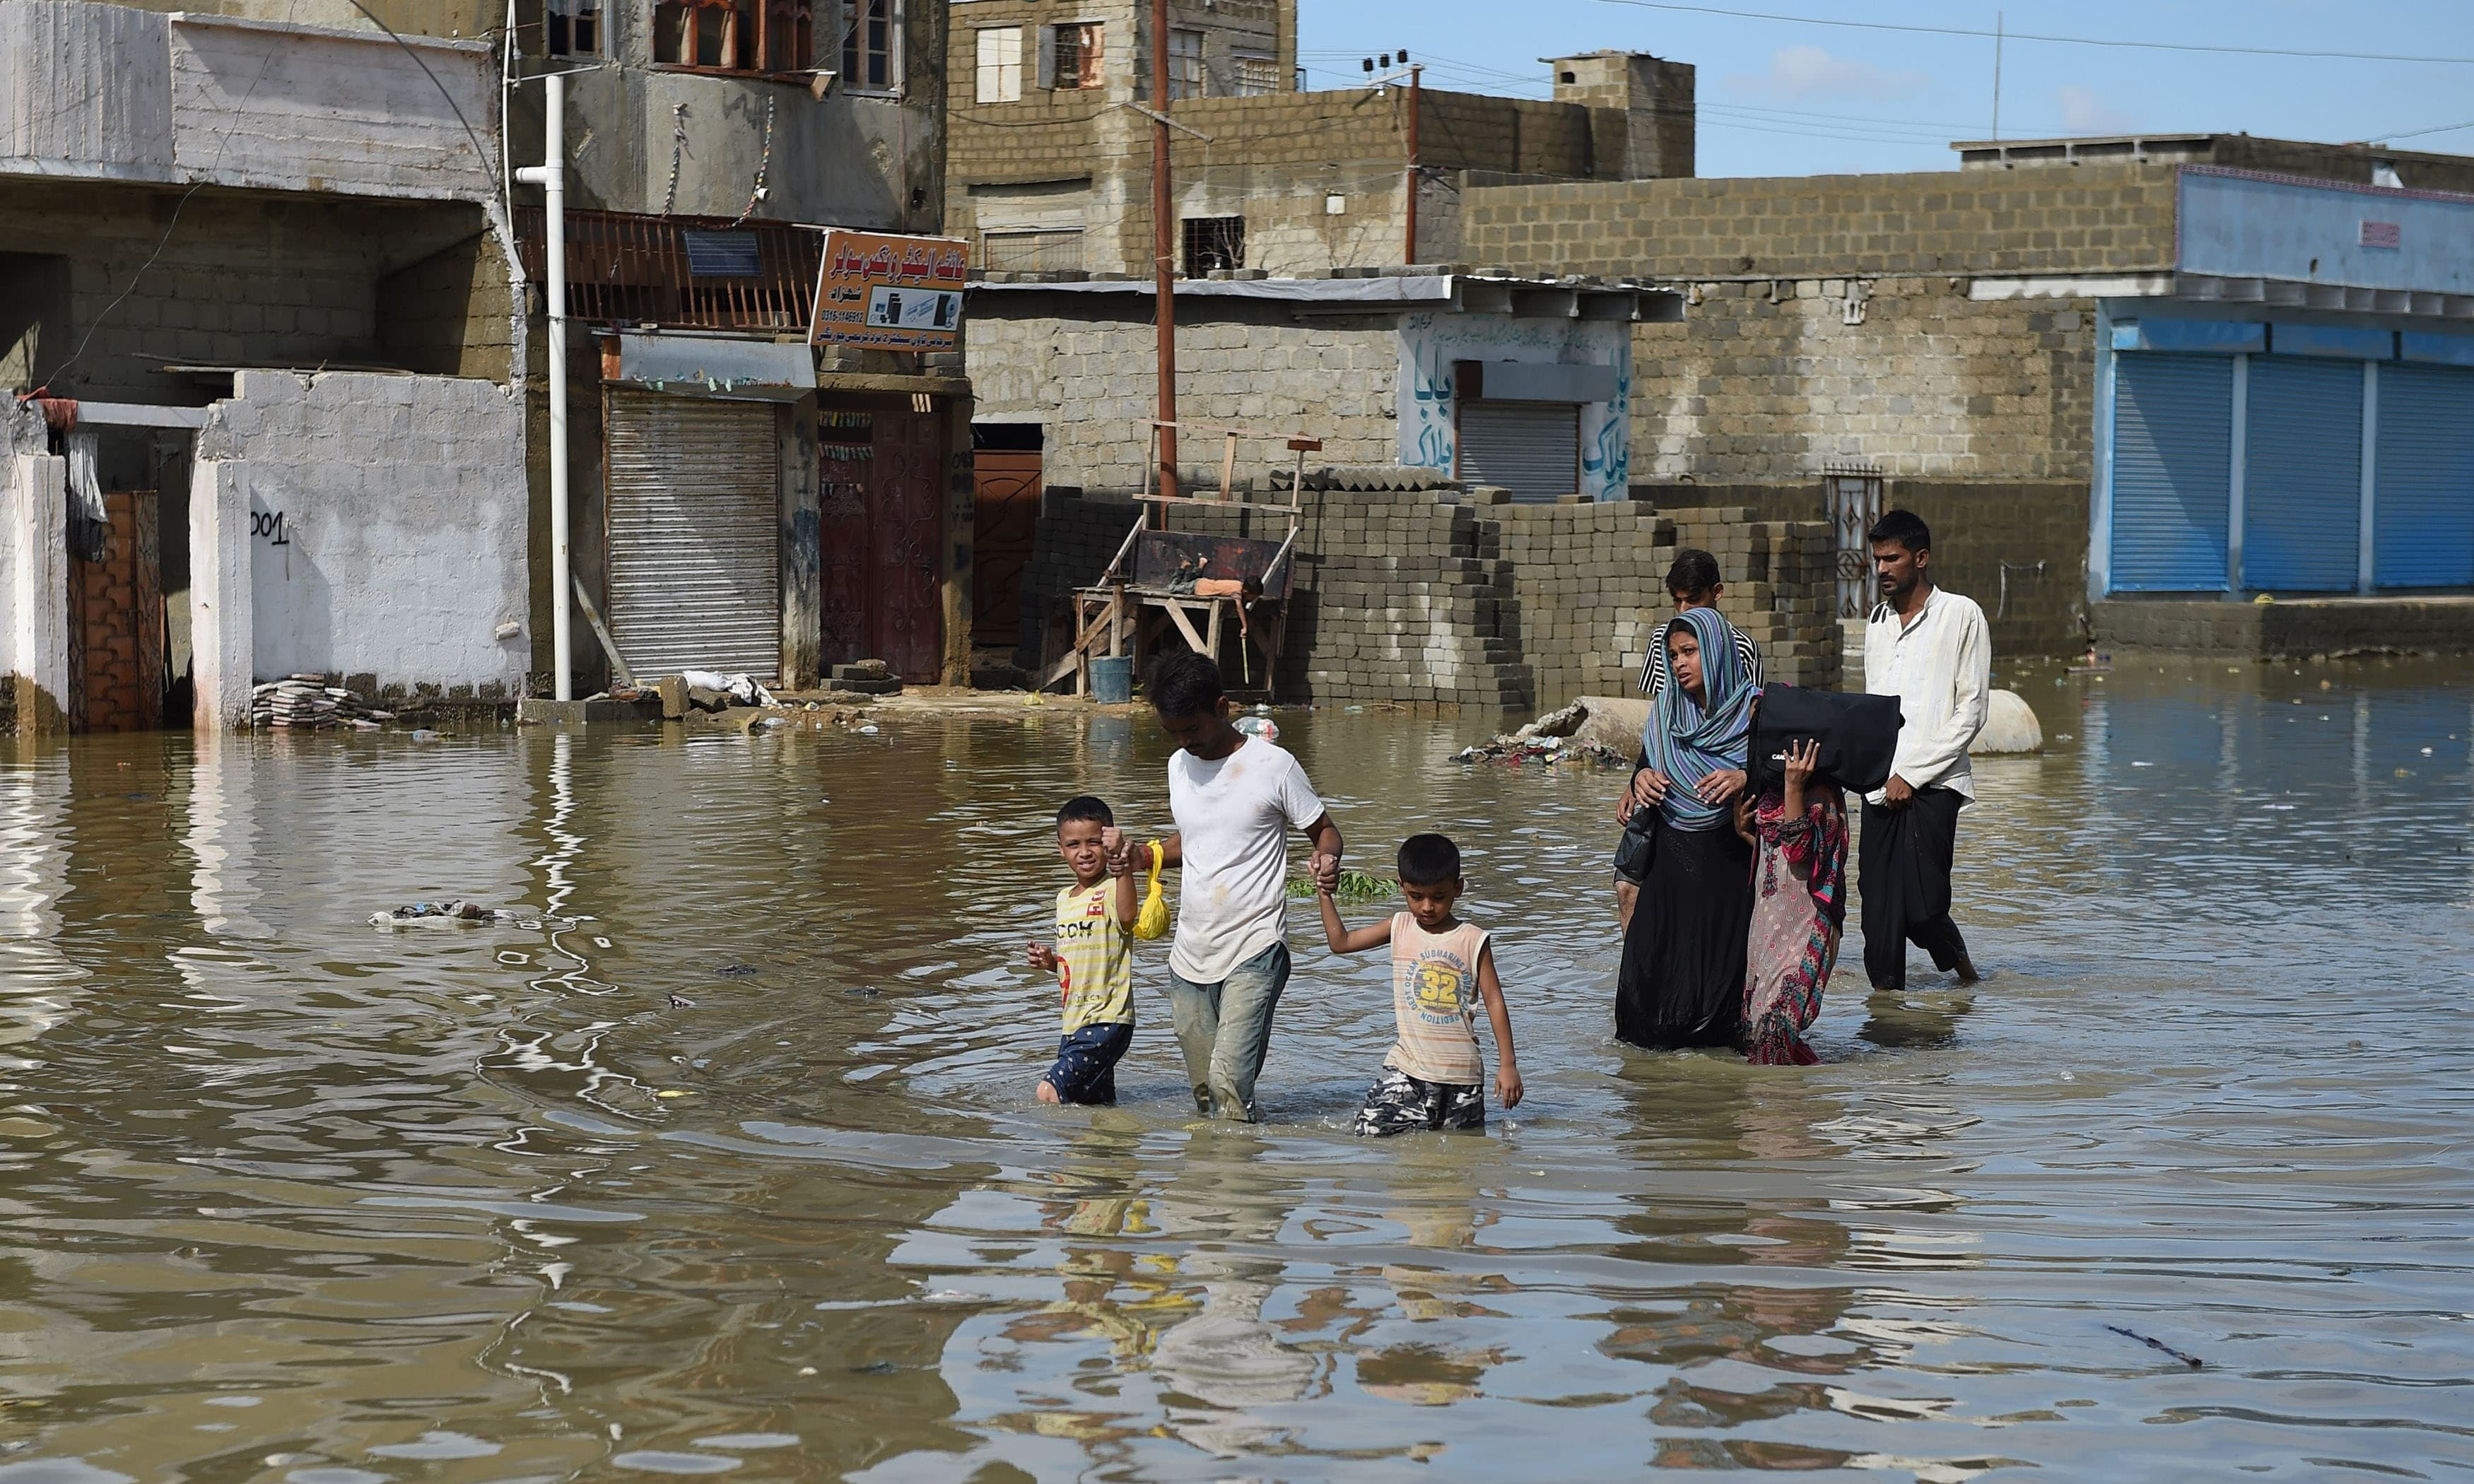 A family makes their way on a flooded street after heavy rain in Karachi on August 31, 2017. ─ AFP